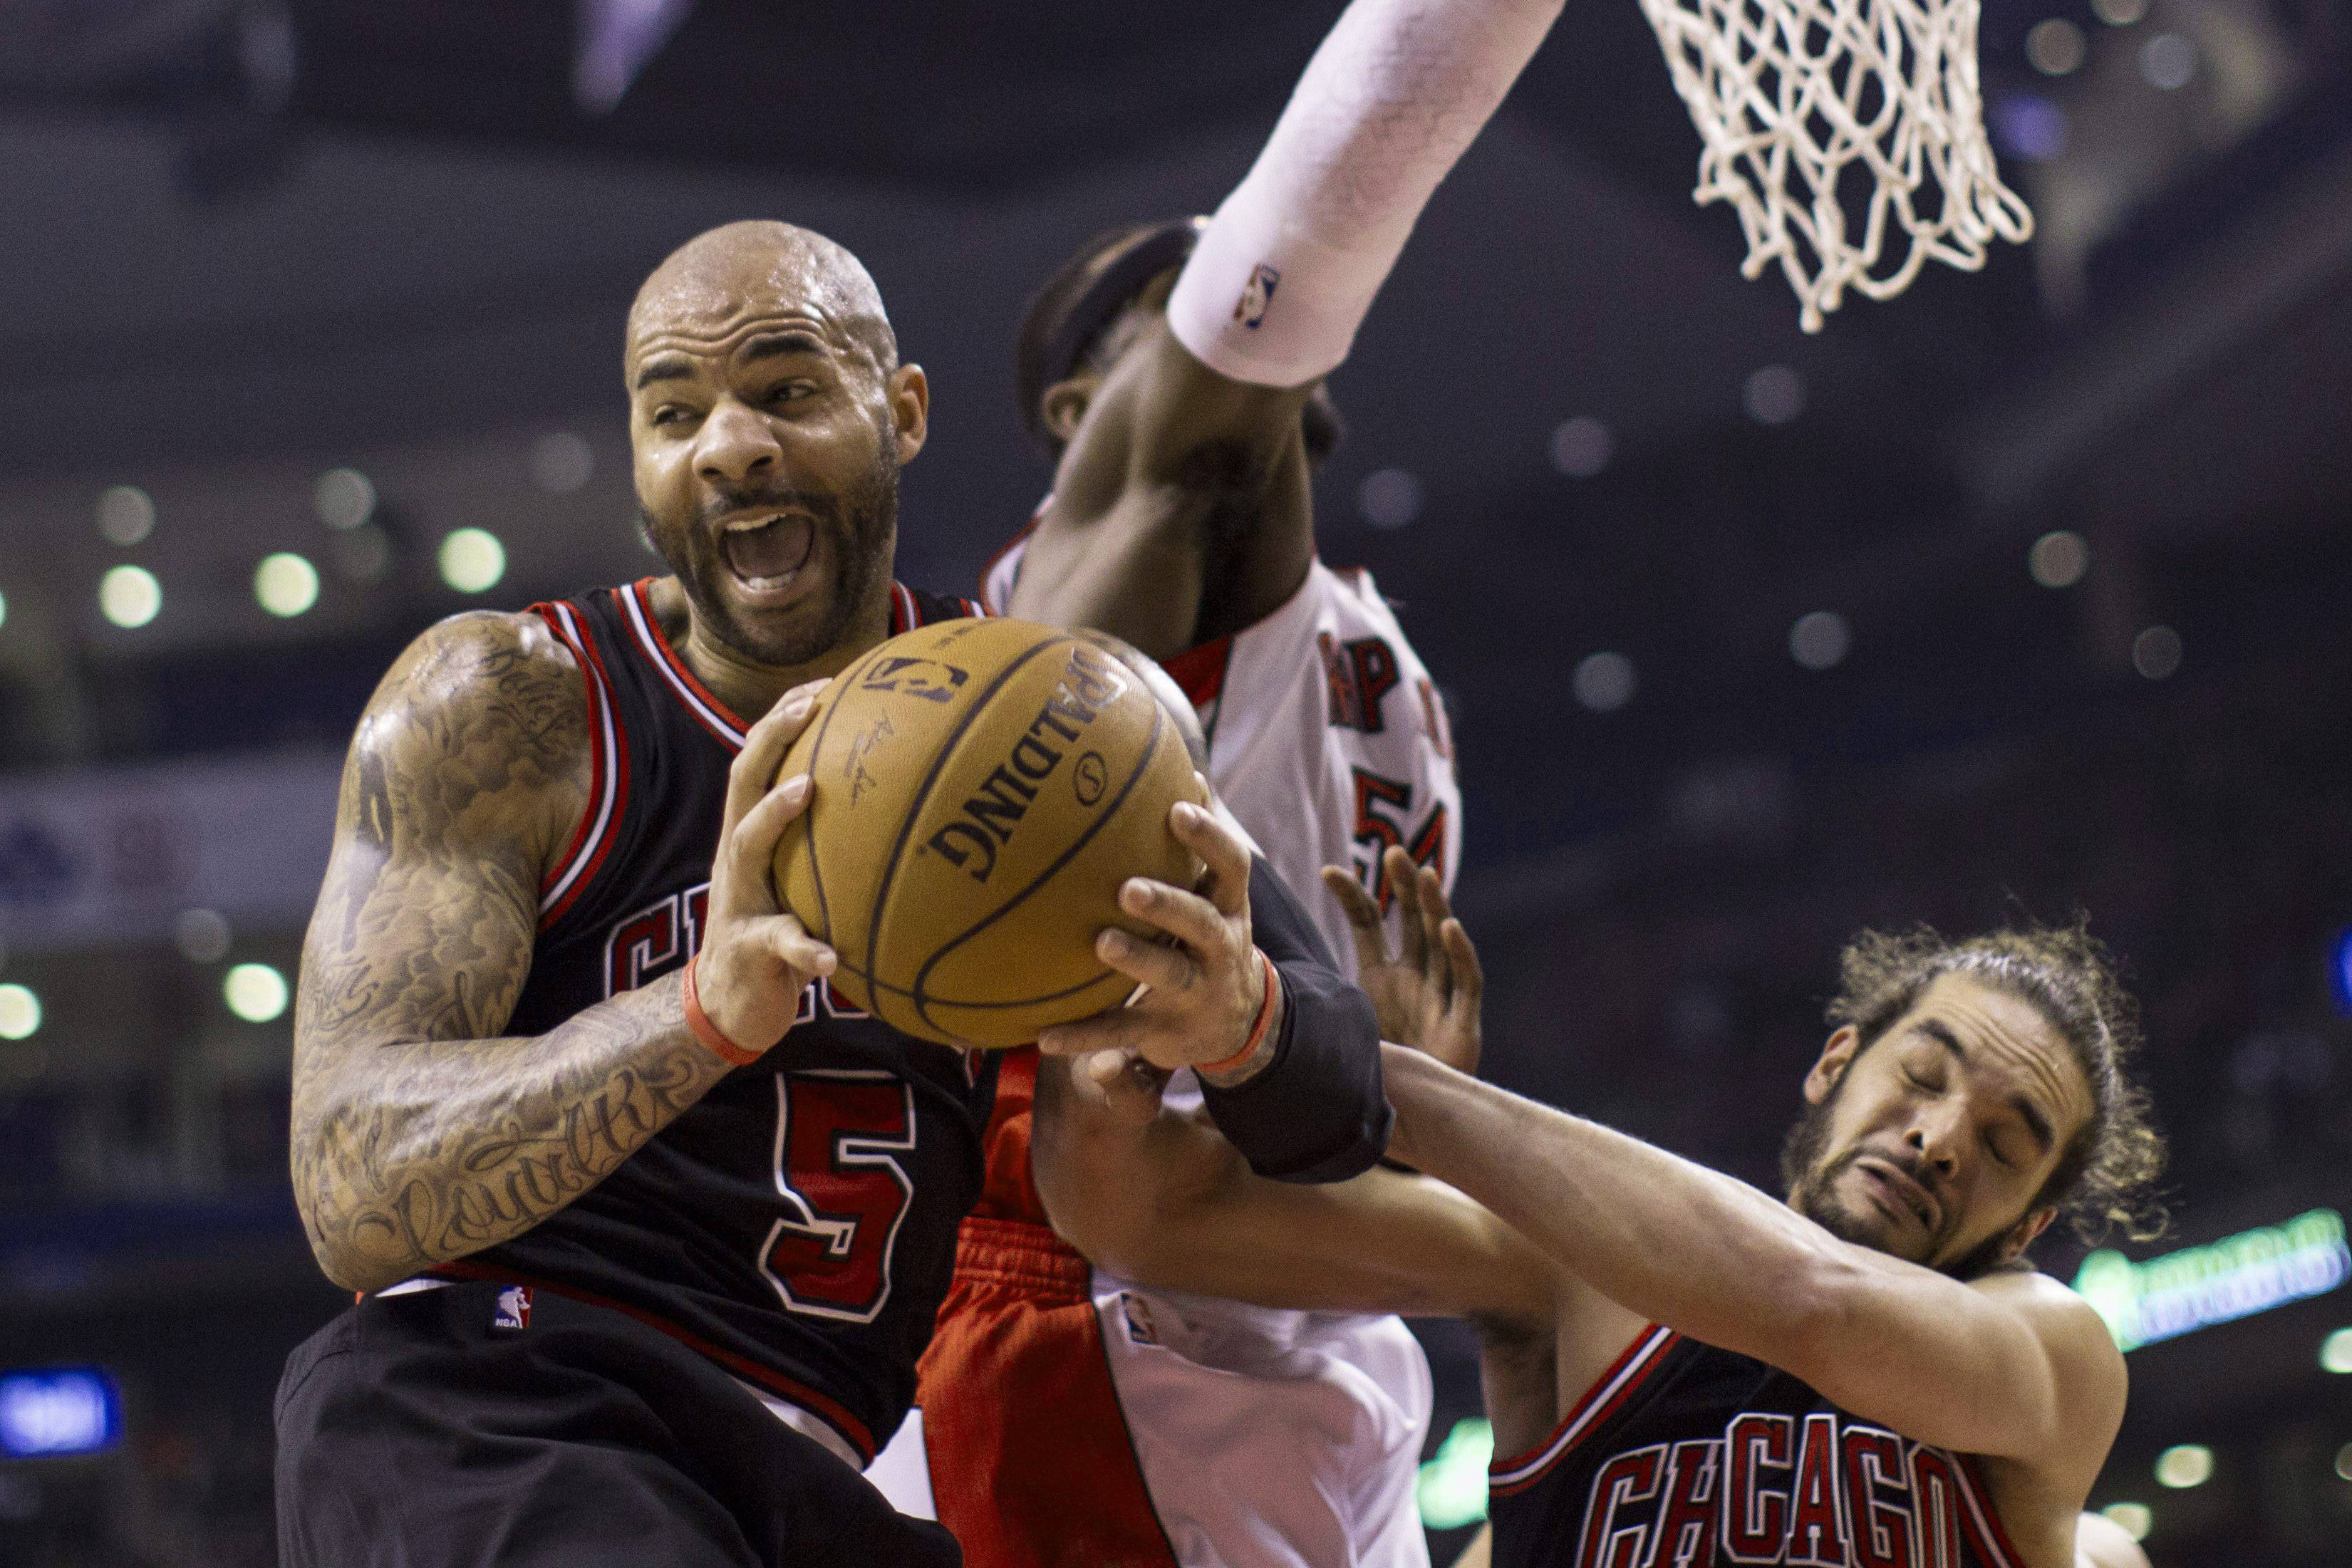 Chicago Bulls' Carlos Boozer (5) claims a rebound in front of Toronto Raptors' Patrick Patterson and Bulls' Joakim Noah during the first half of an NBA basketball game, Wednesday, Feb. 19, 2014 in Toronto.